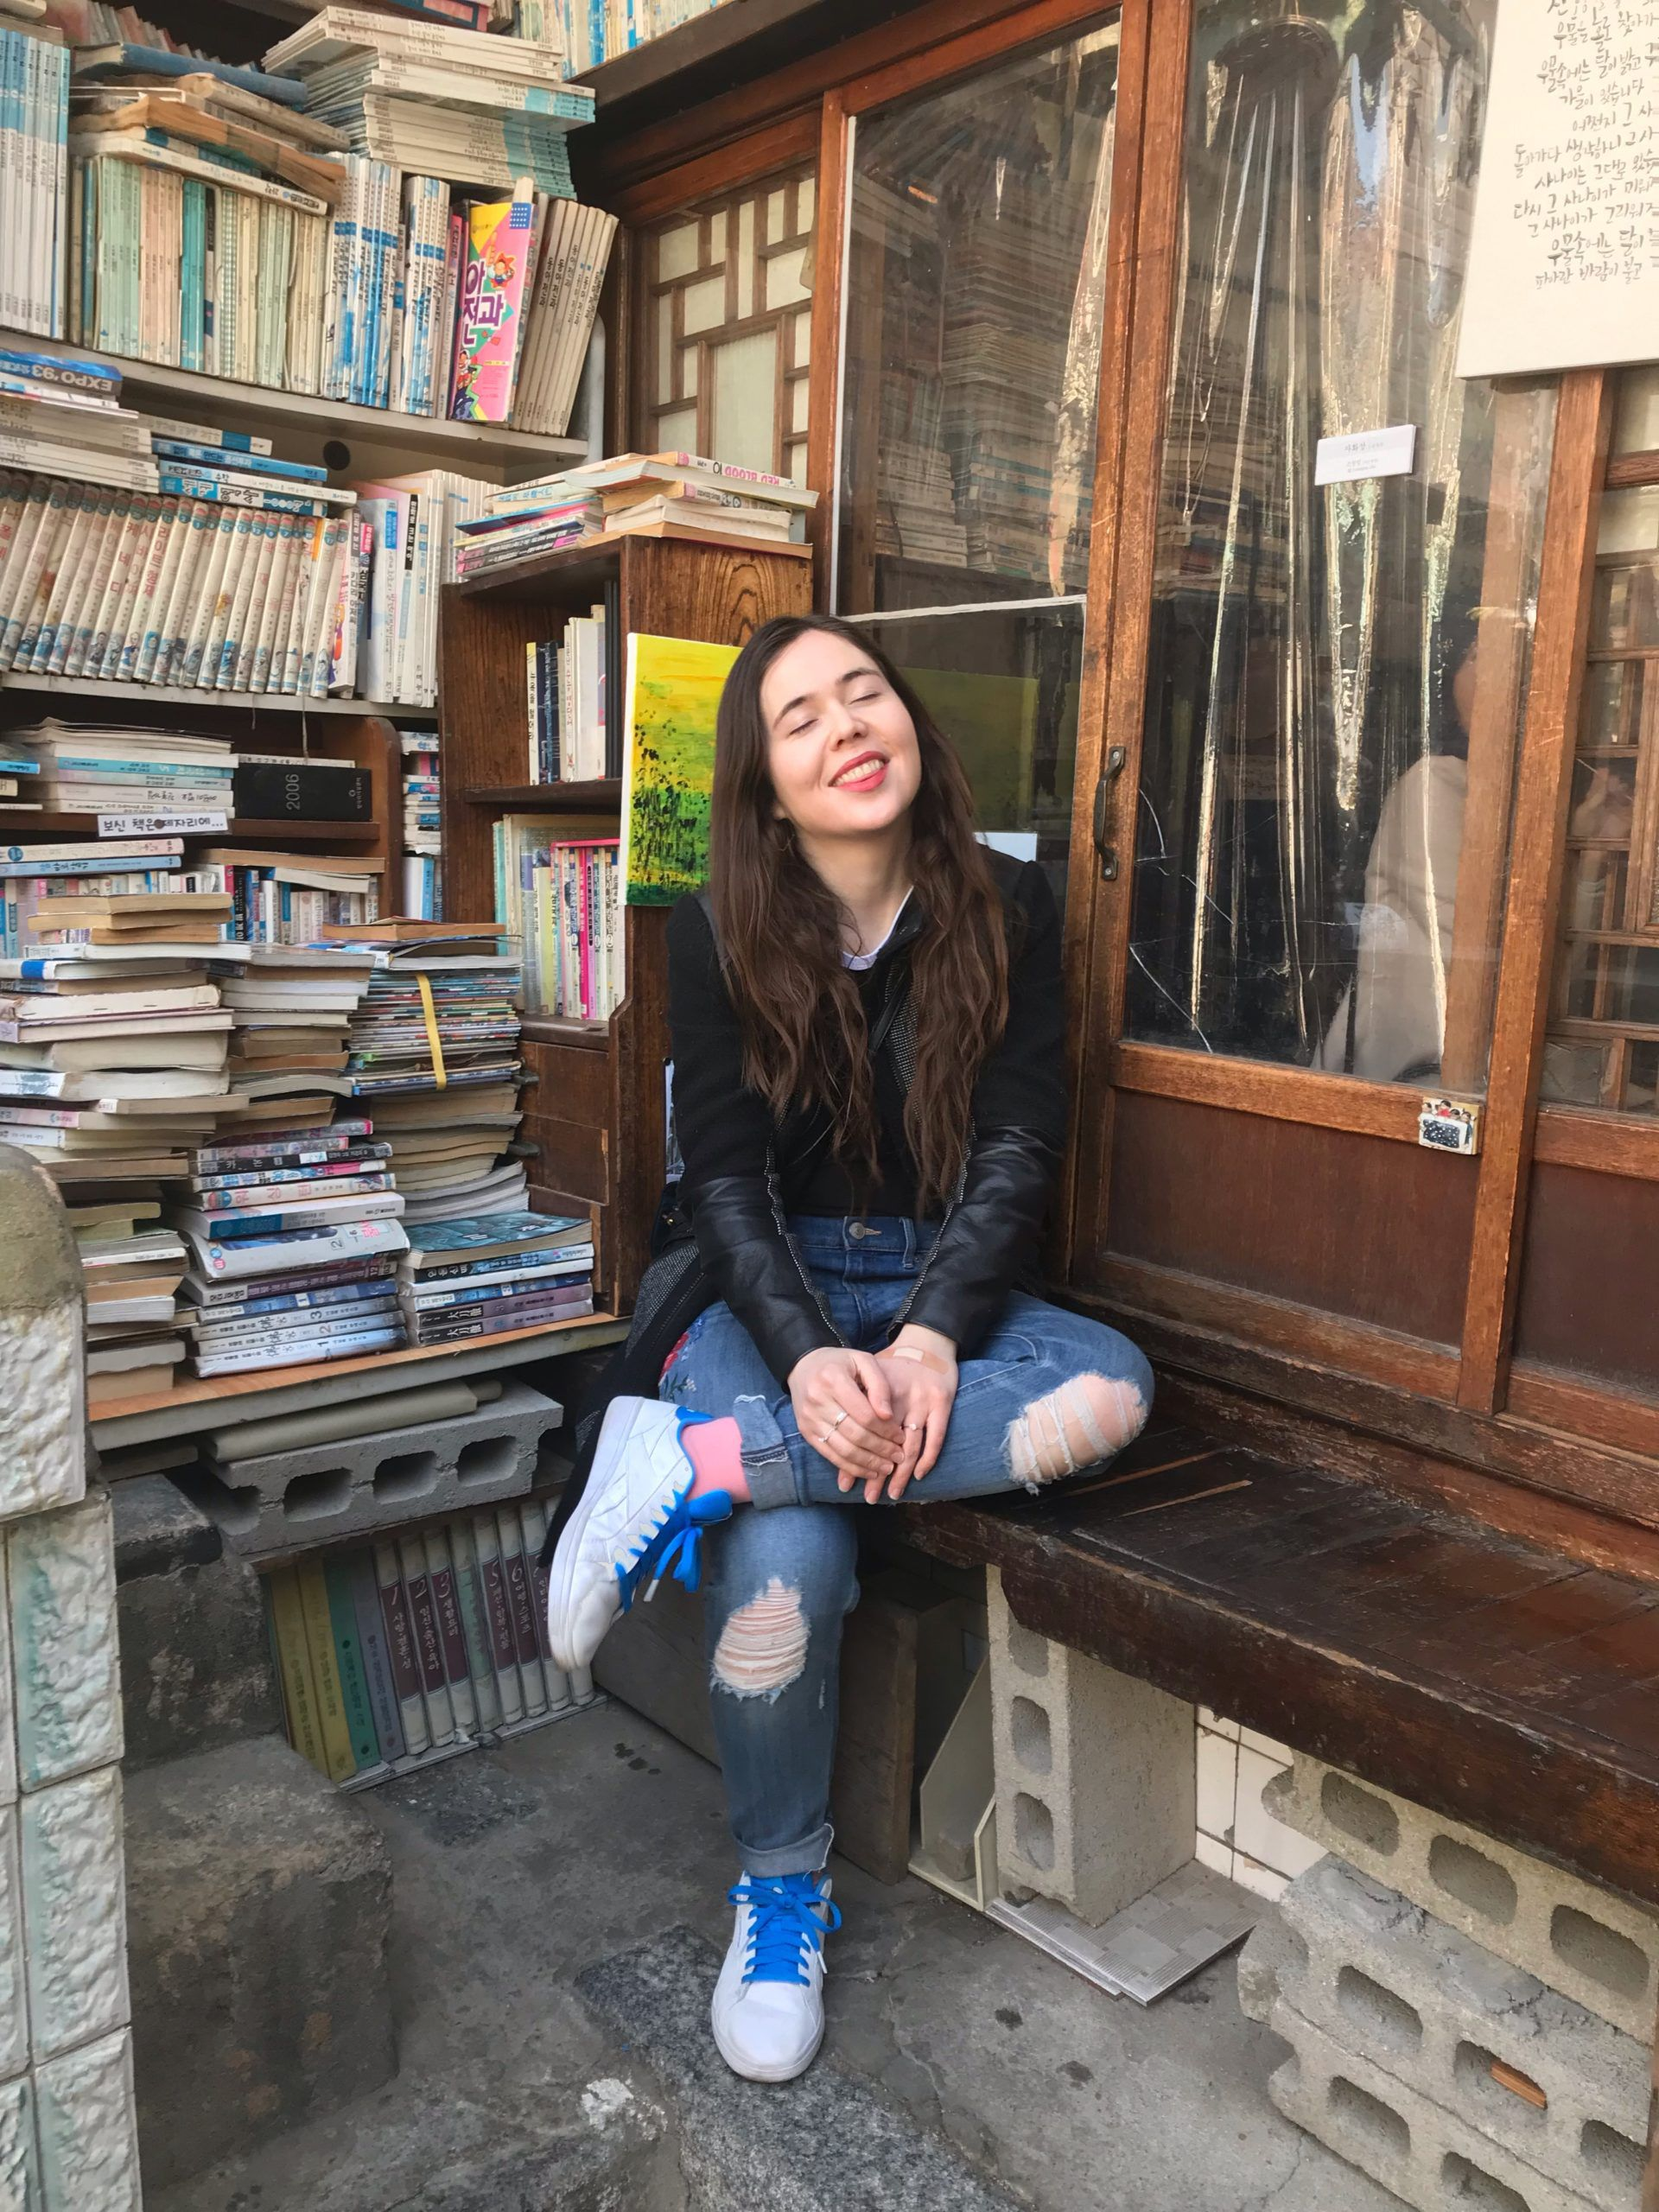 Image of article writer at Daeo bookstore in Seoul. Photo credit: Gianessa Refermat